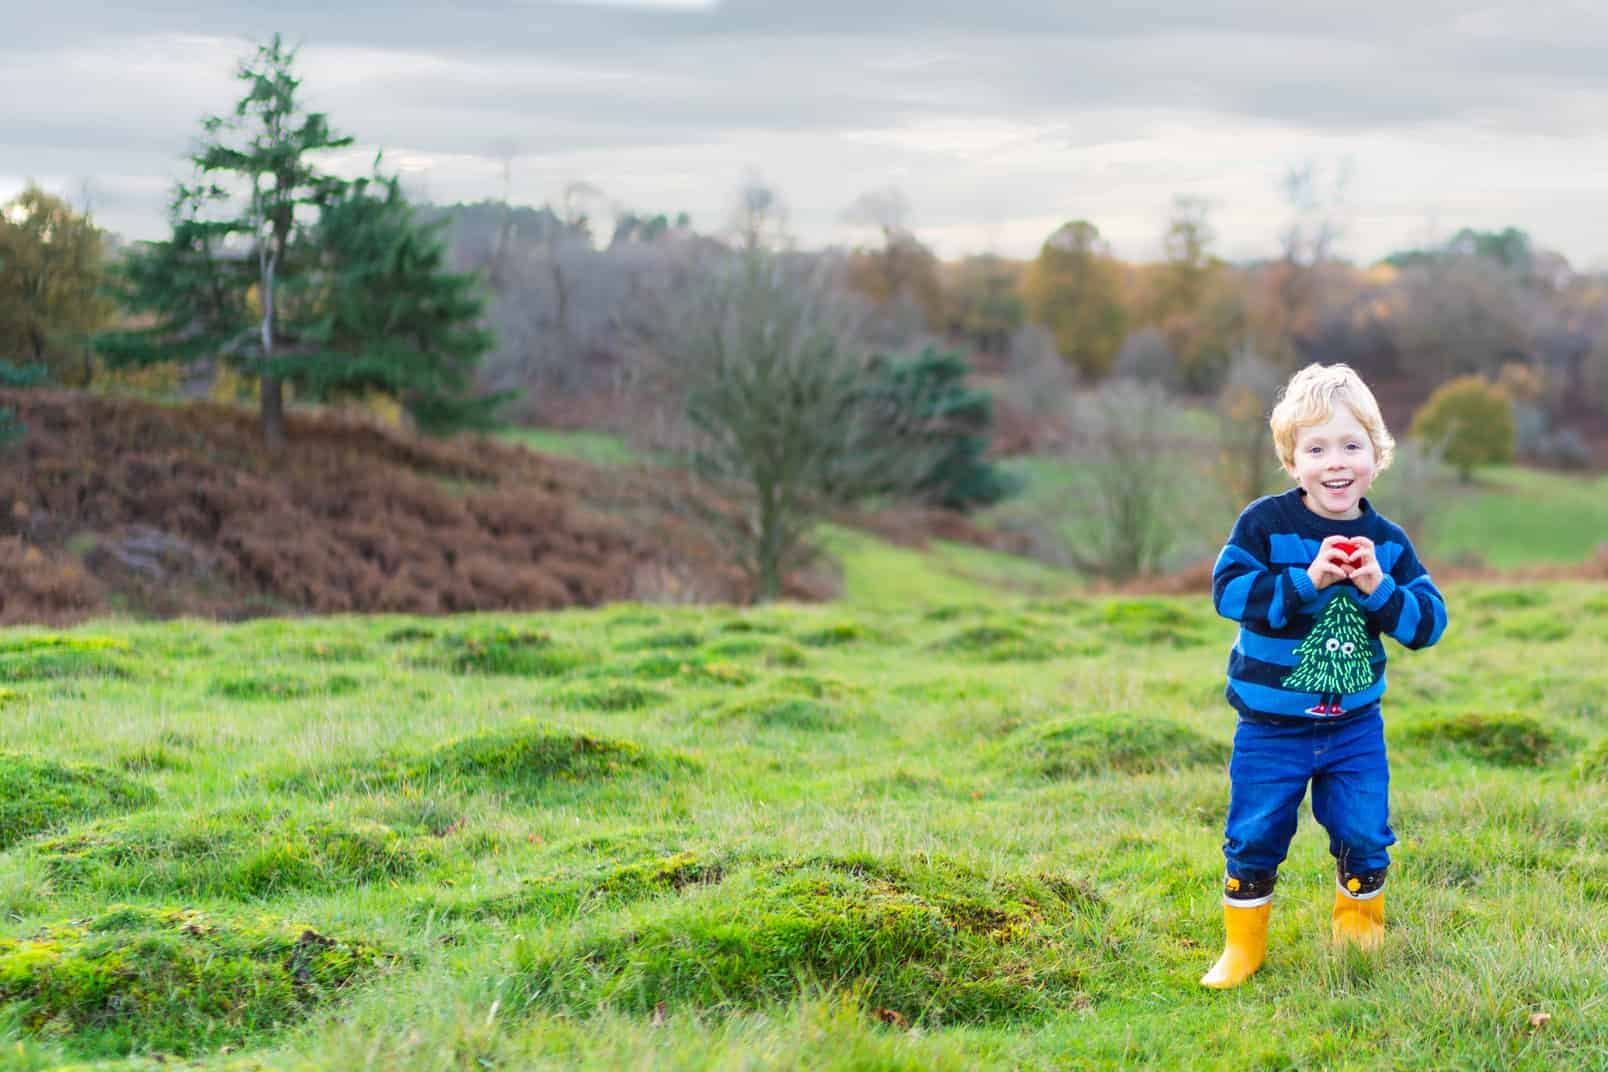 Bromley Family Photographer capturing natural portraits